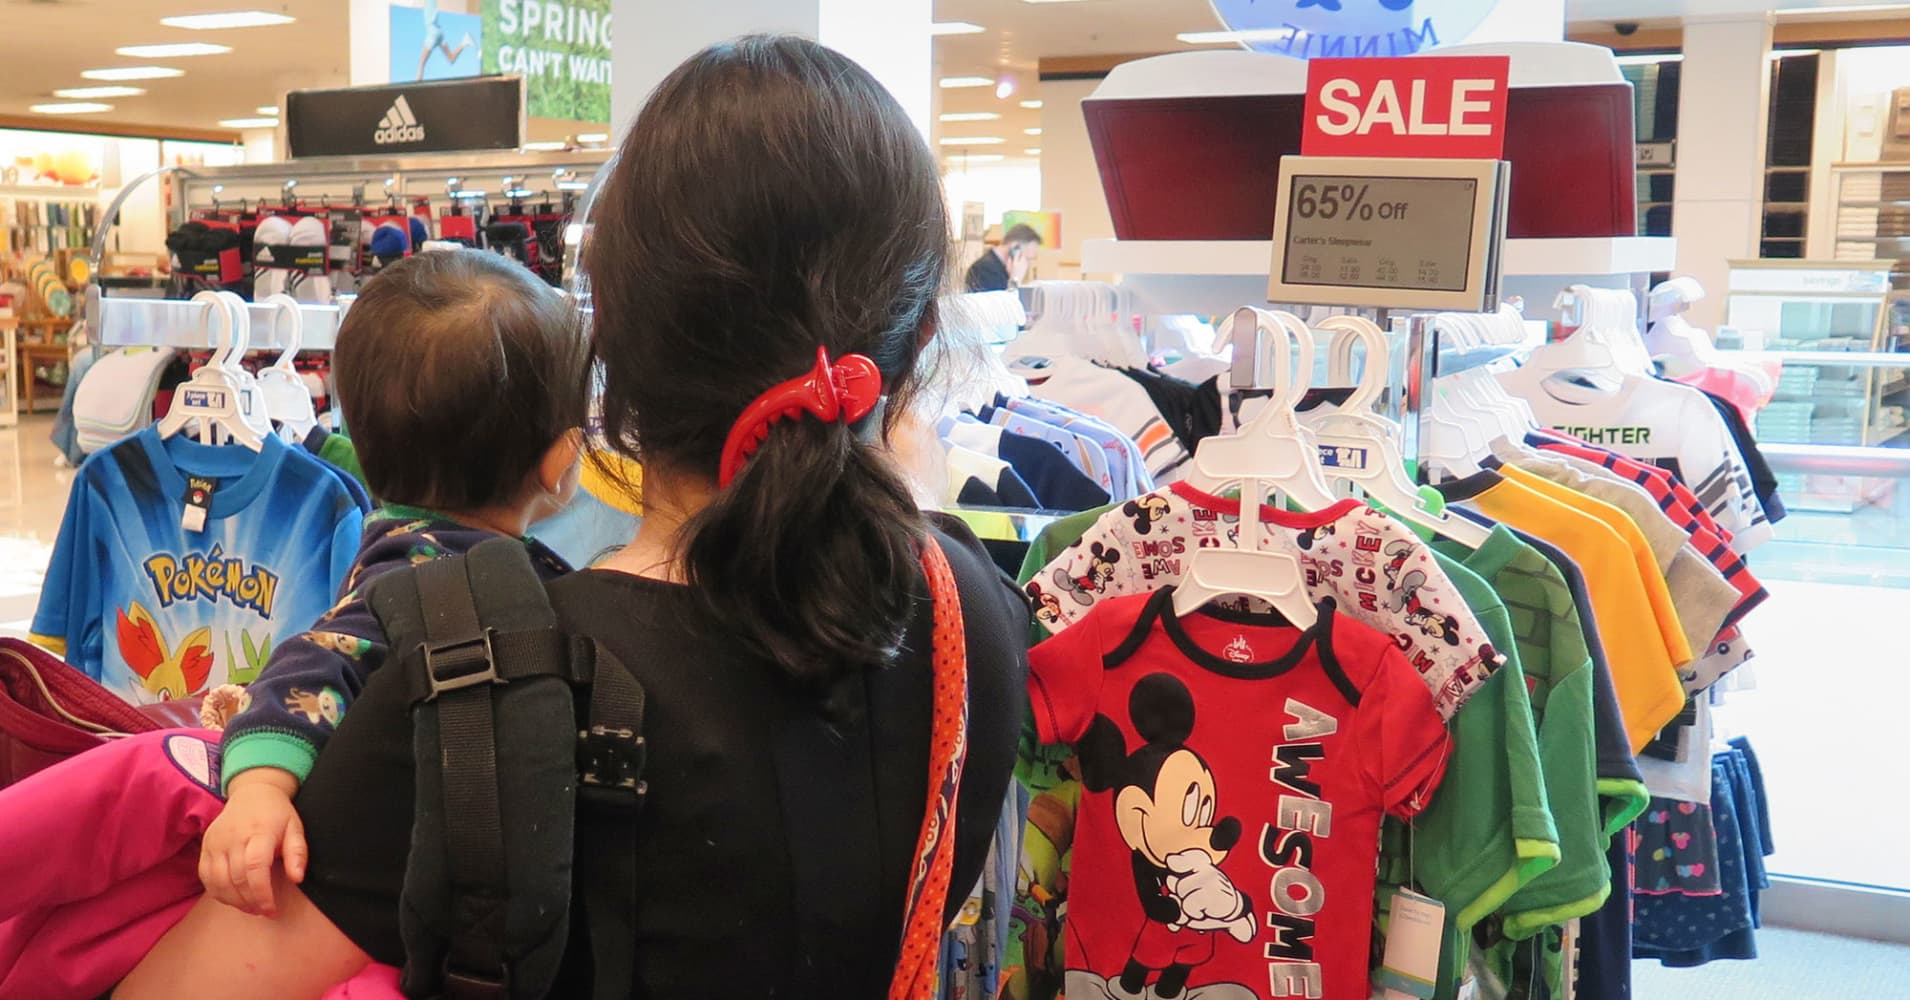 Retail recession? Why Kohl's miss was so huge